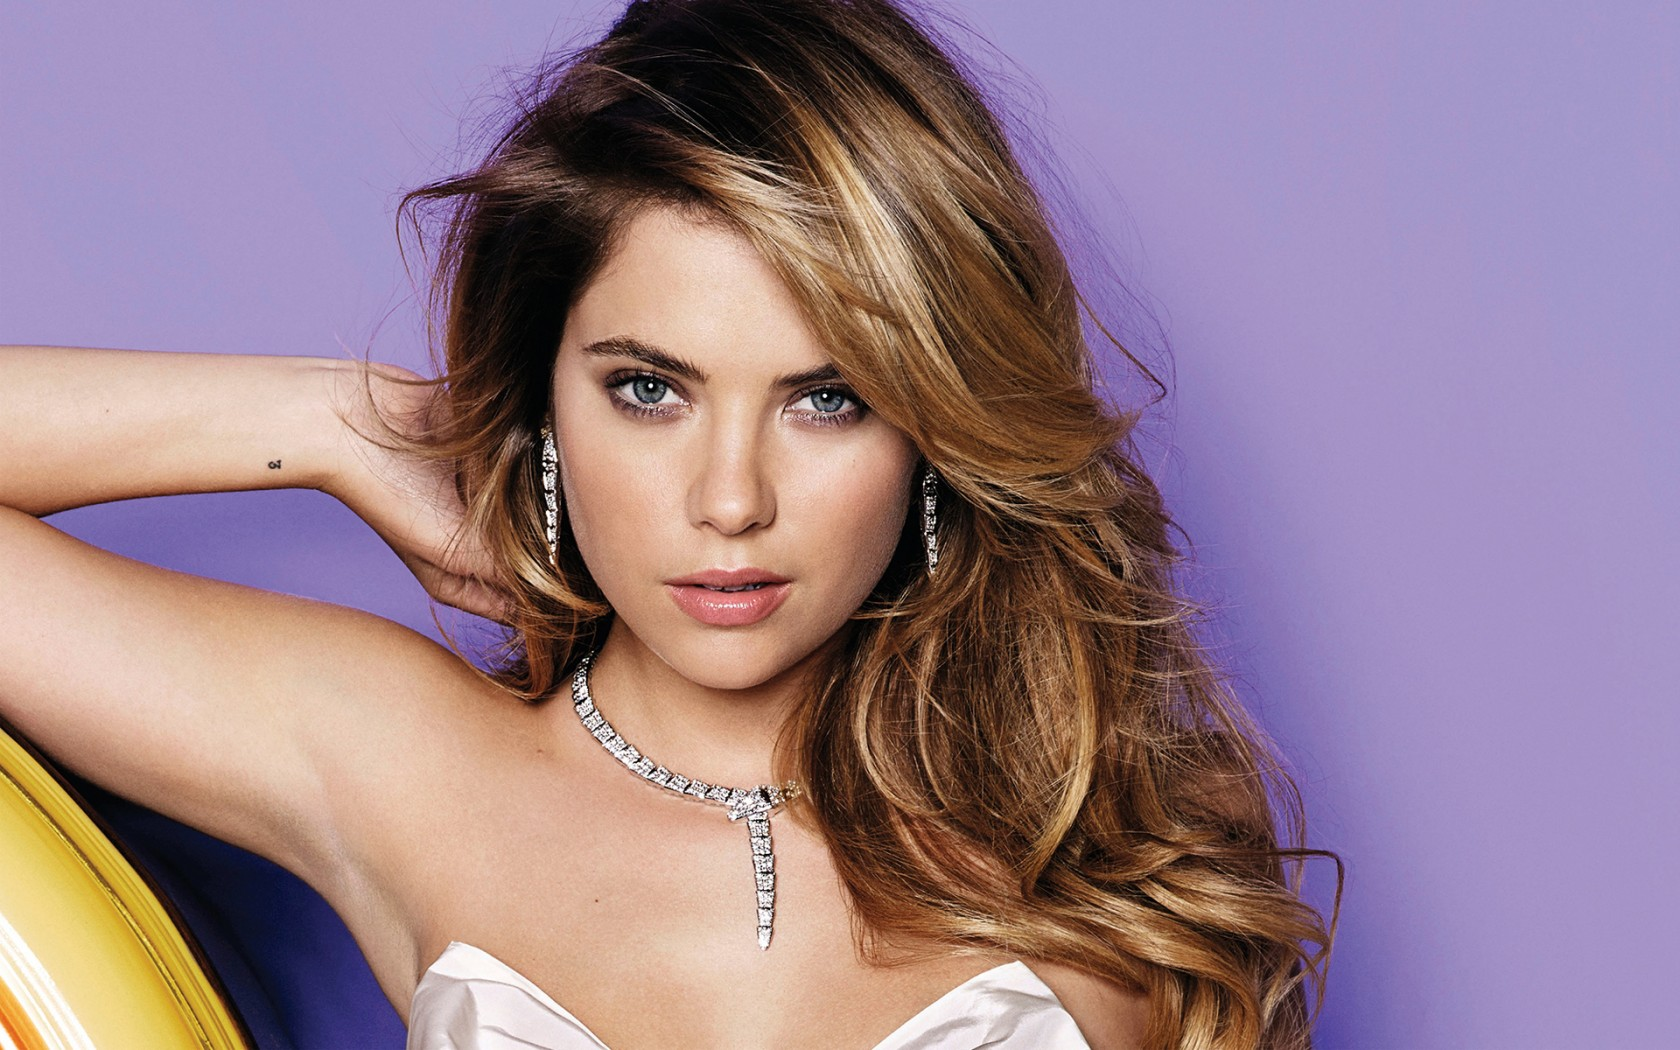 3d Wallpapers For Windows 7 1366x768 Ashley Benson 2015 Wallpapers Hd Wallpapers Id 16240